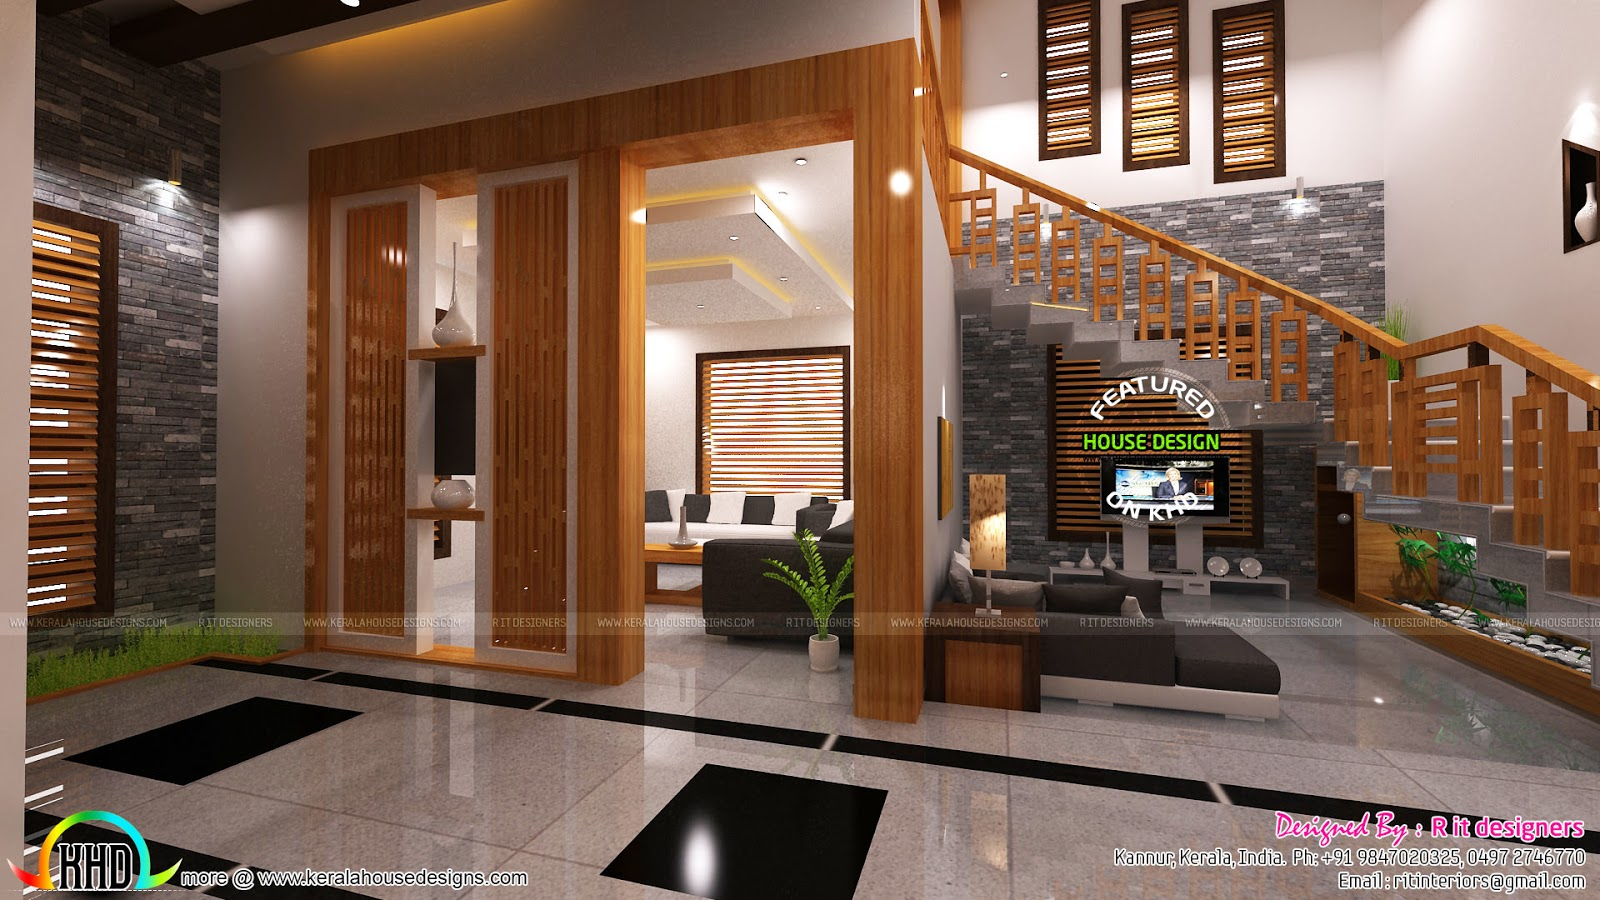 Living foyer under stair interiors kerala home design and floor plans Interior design ideas for kerala houses